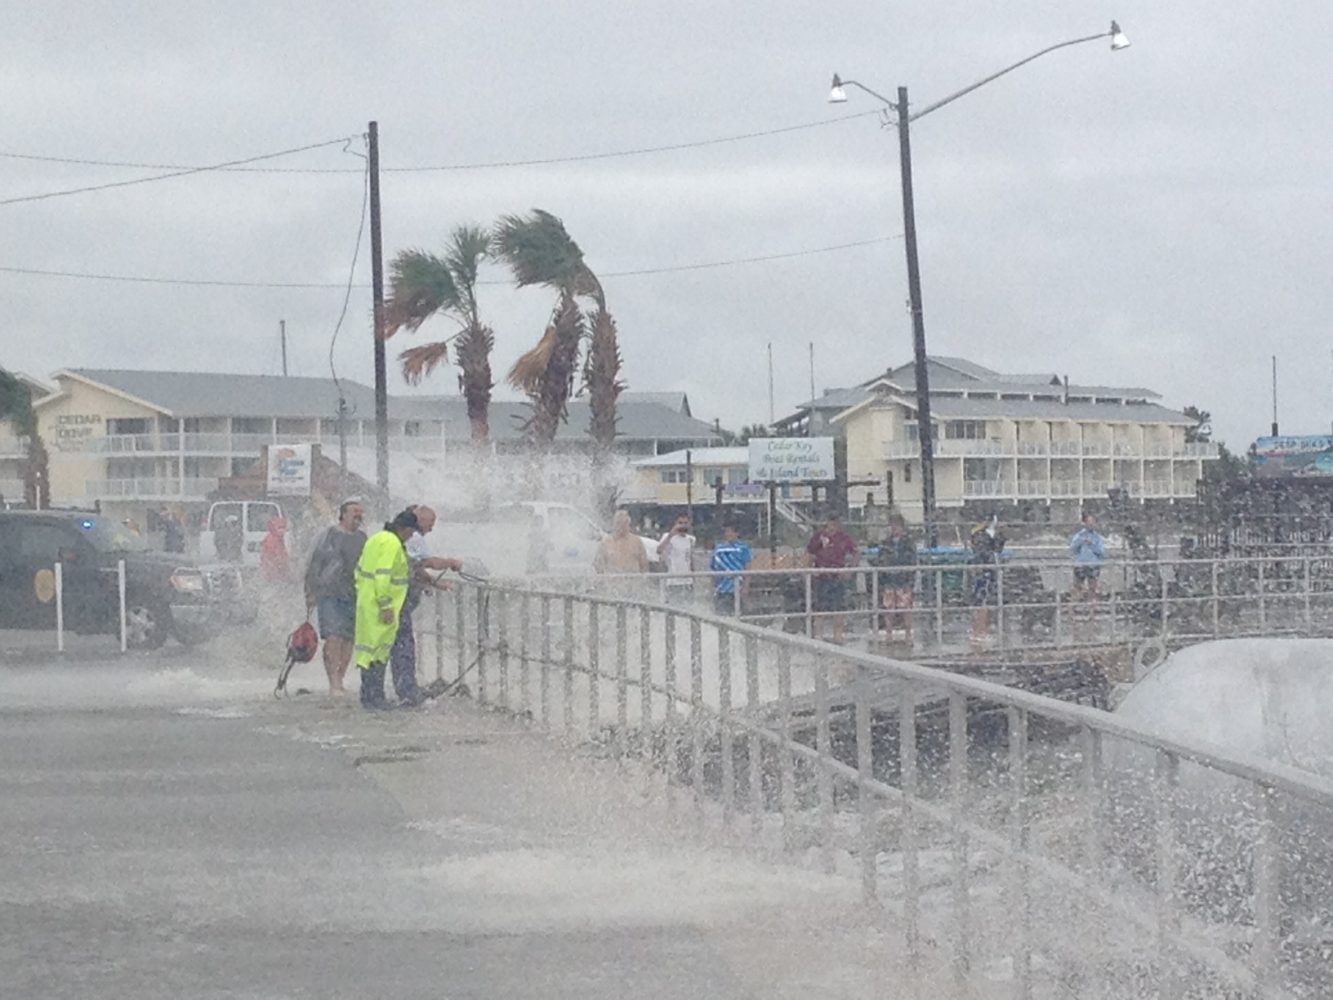 Tropical storm force winds in Cedar Key on Sunday afternoon